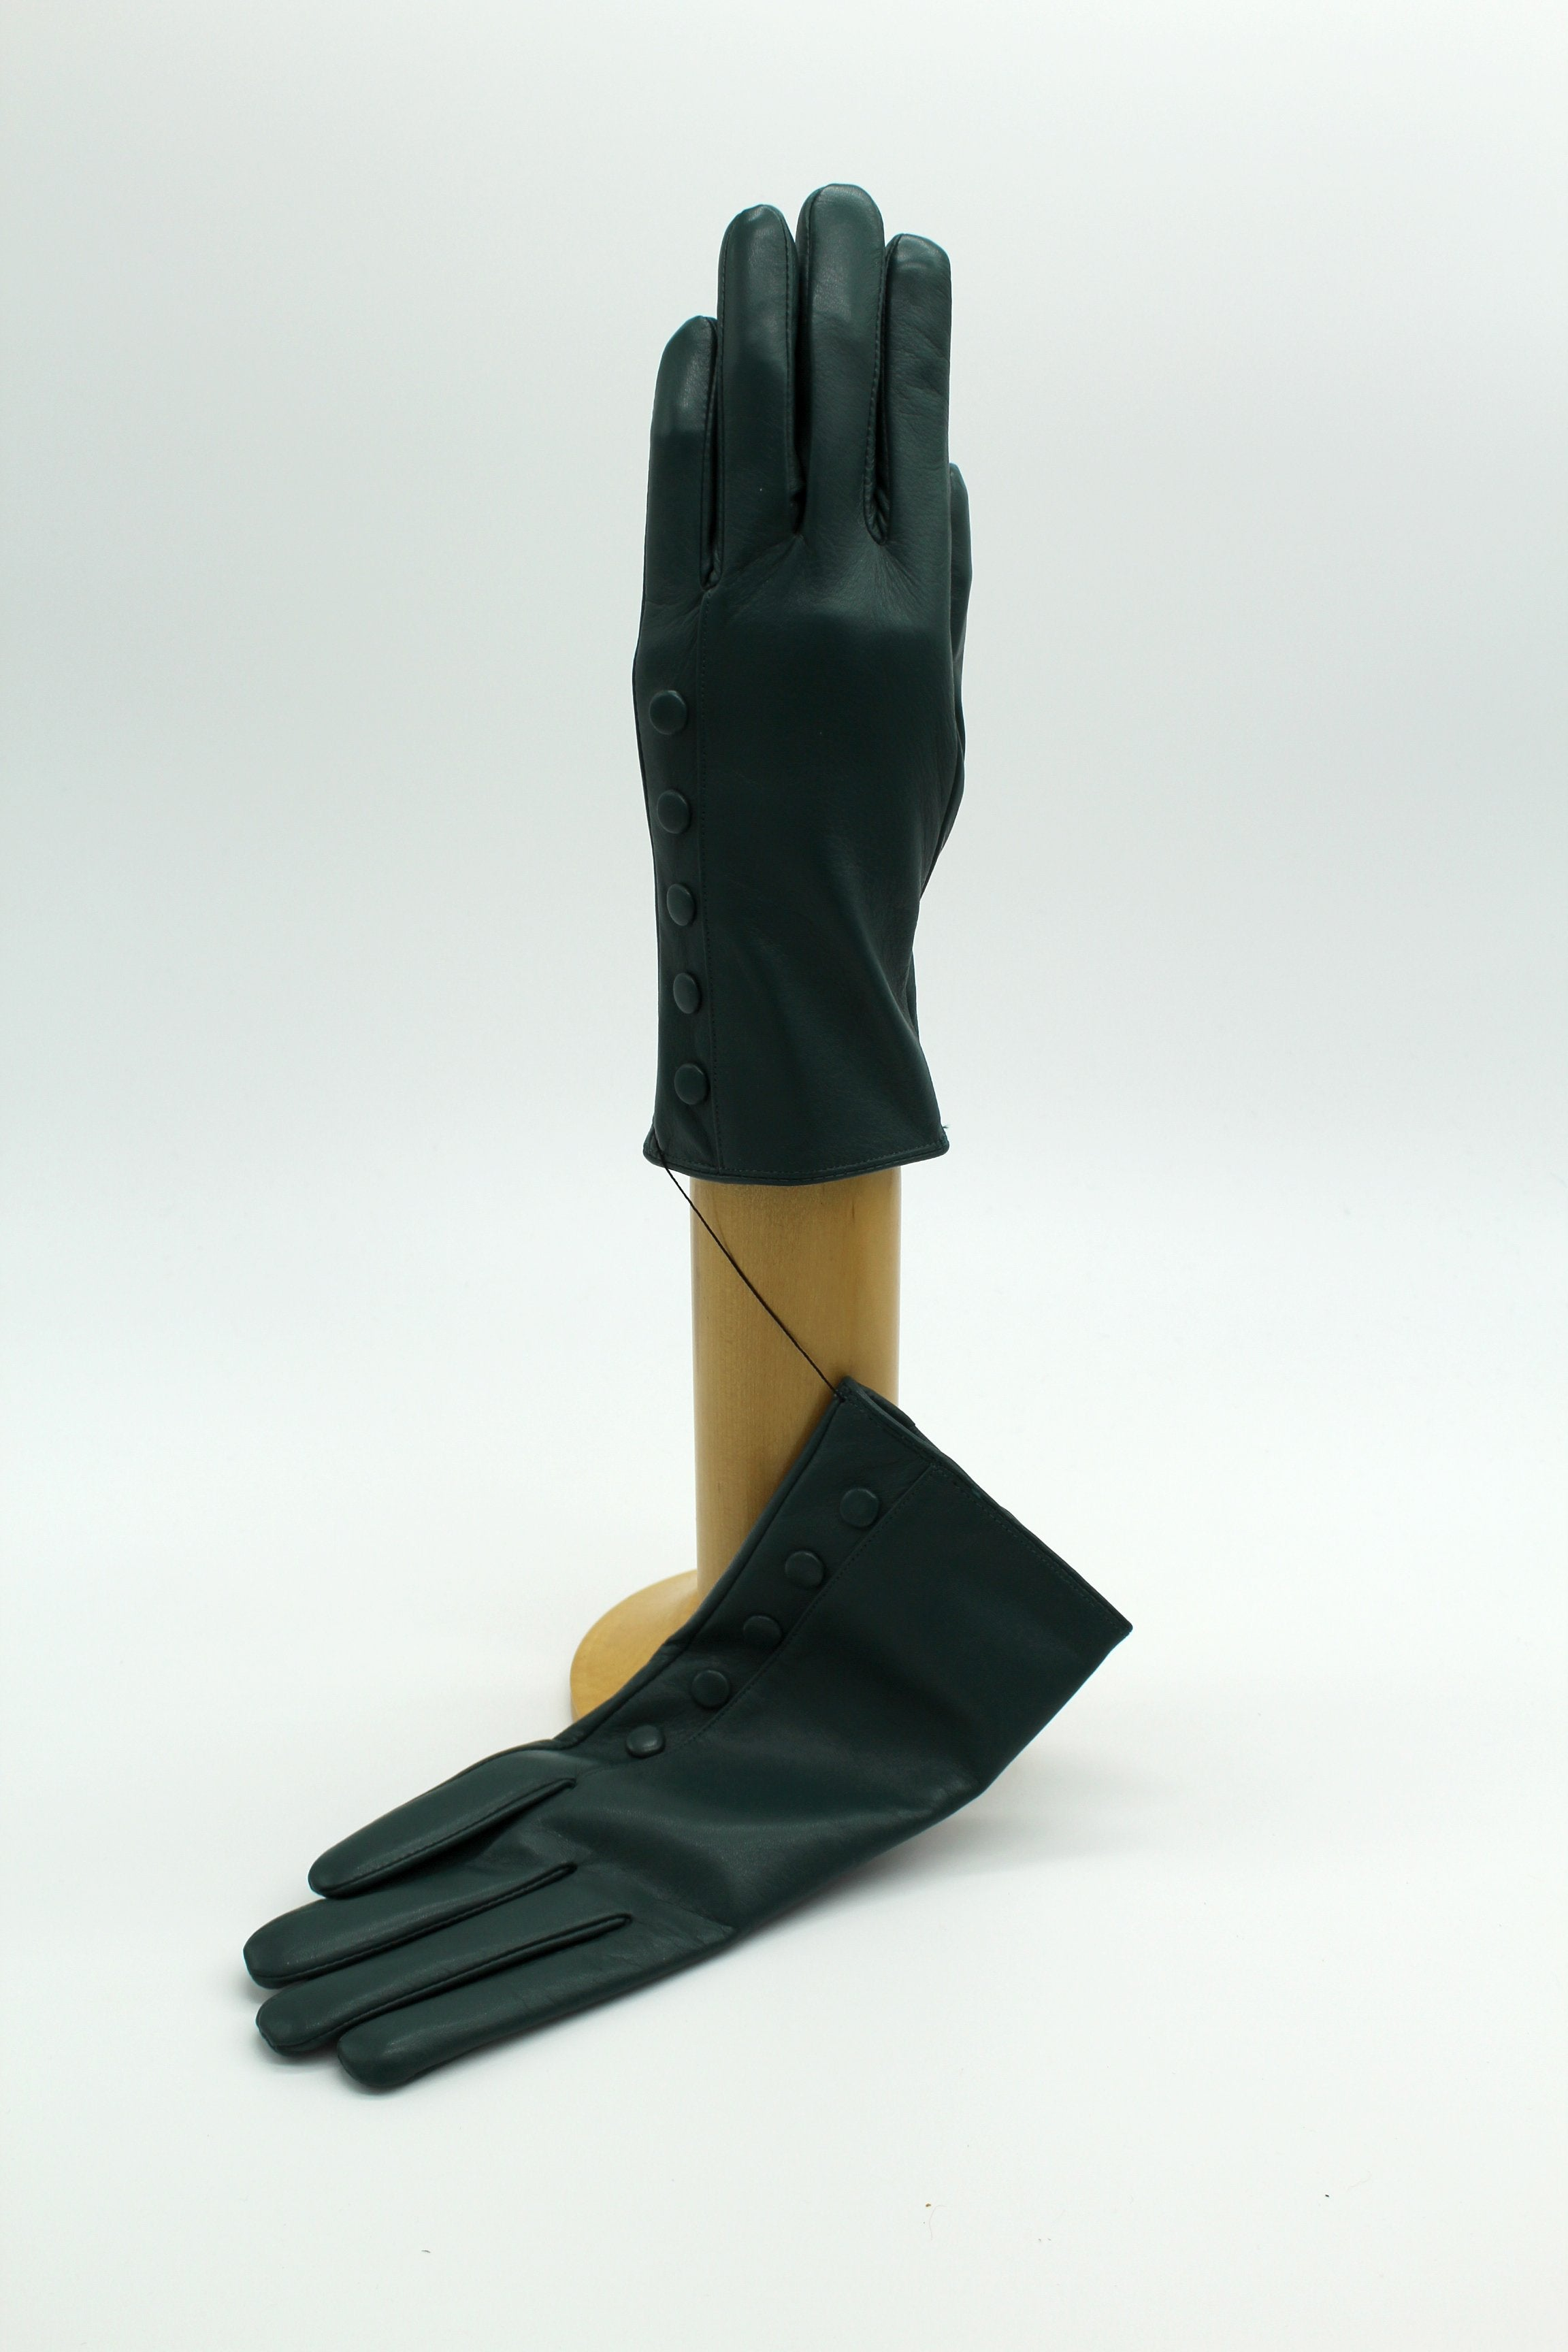 Cashmere Lined Leather Ladies Gloves, Green €59